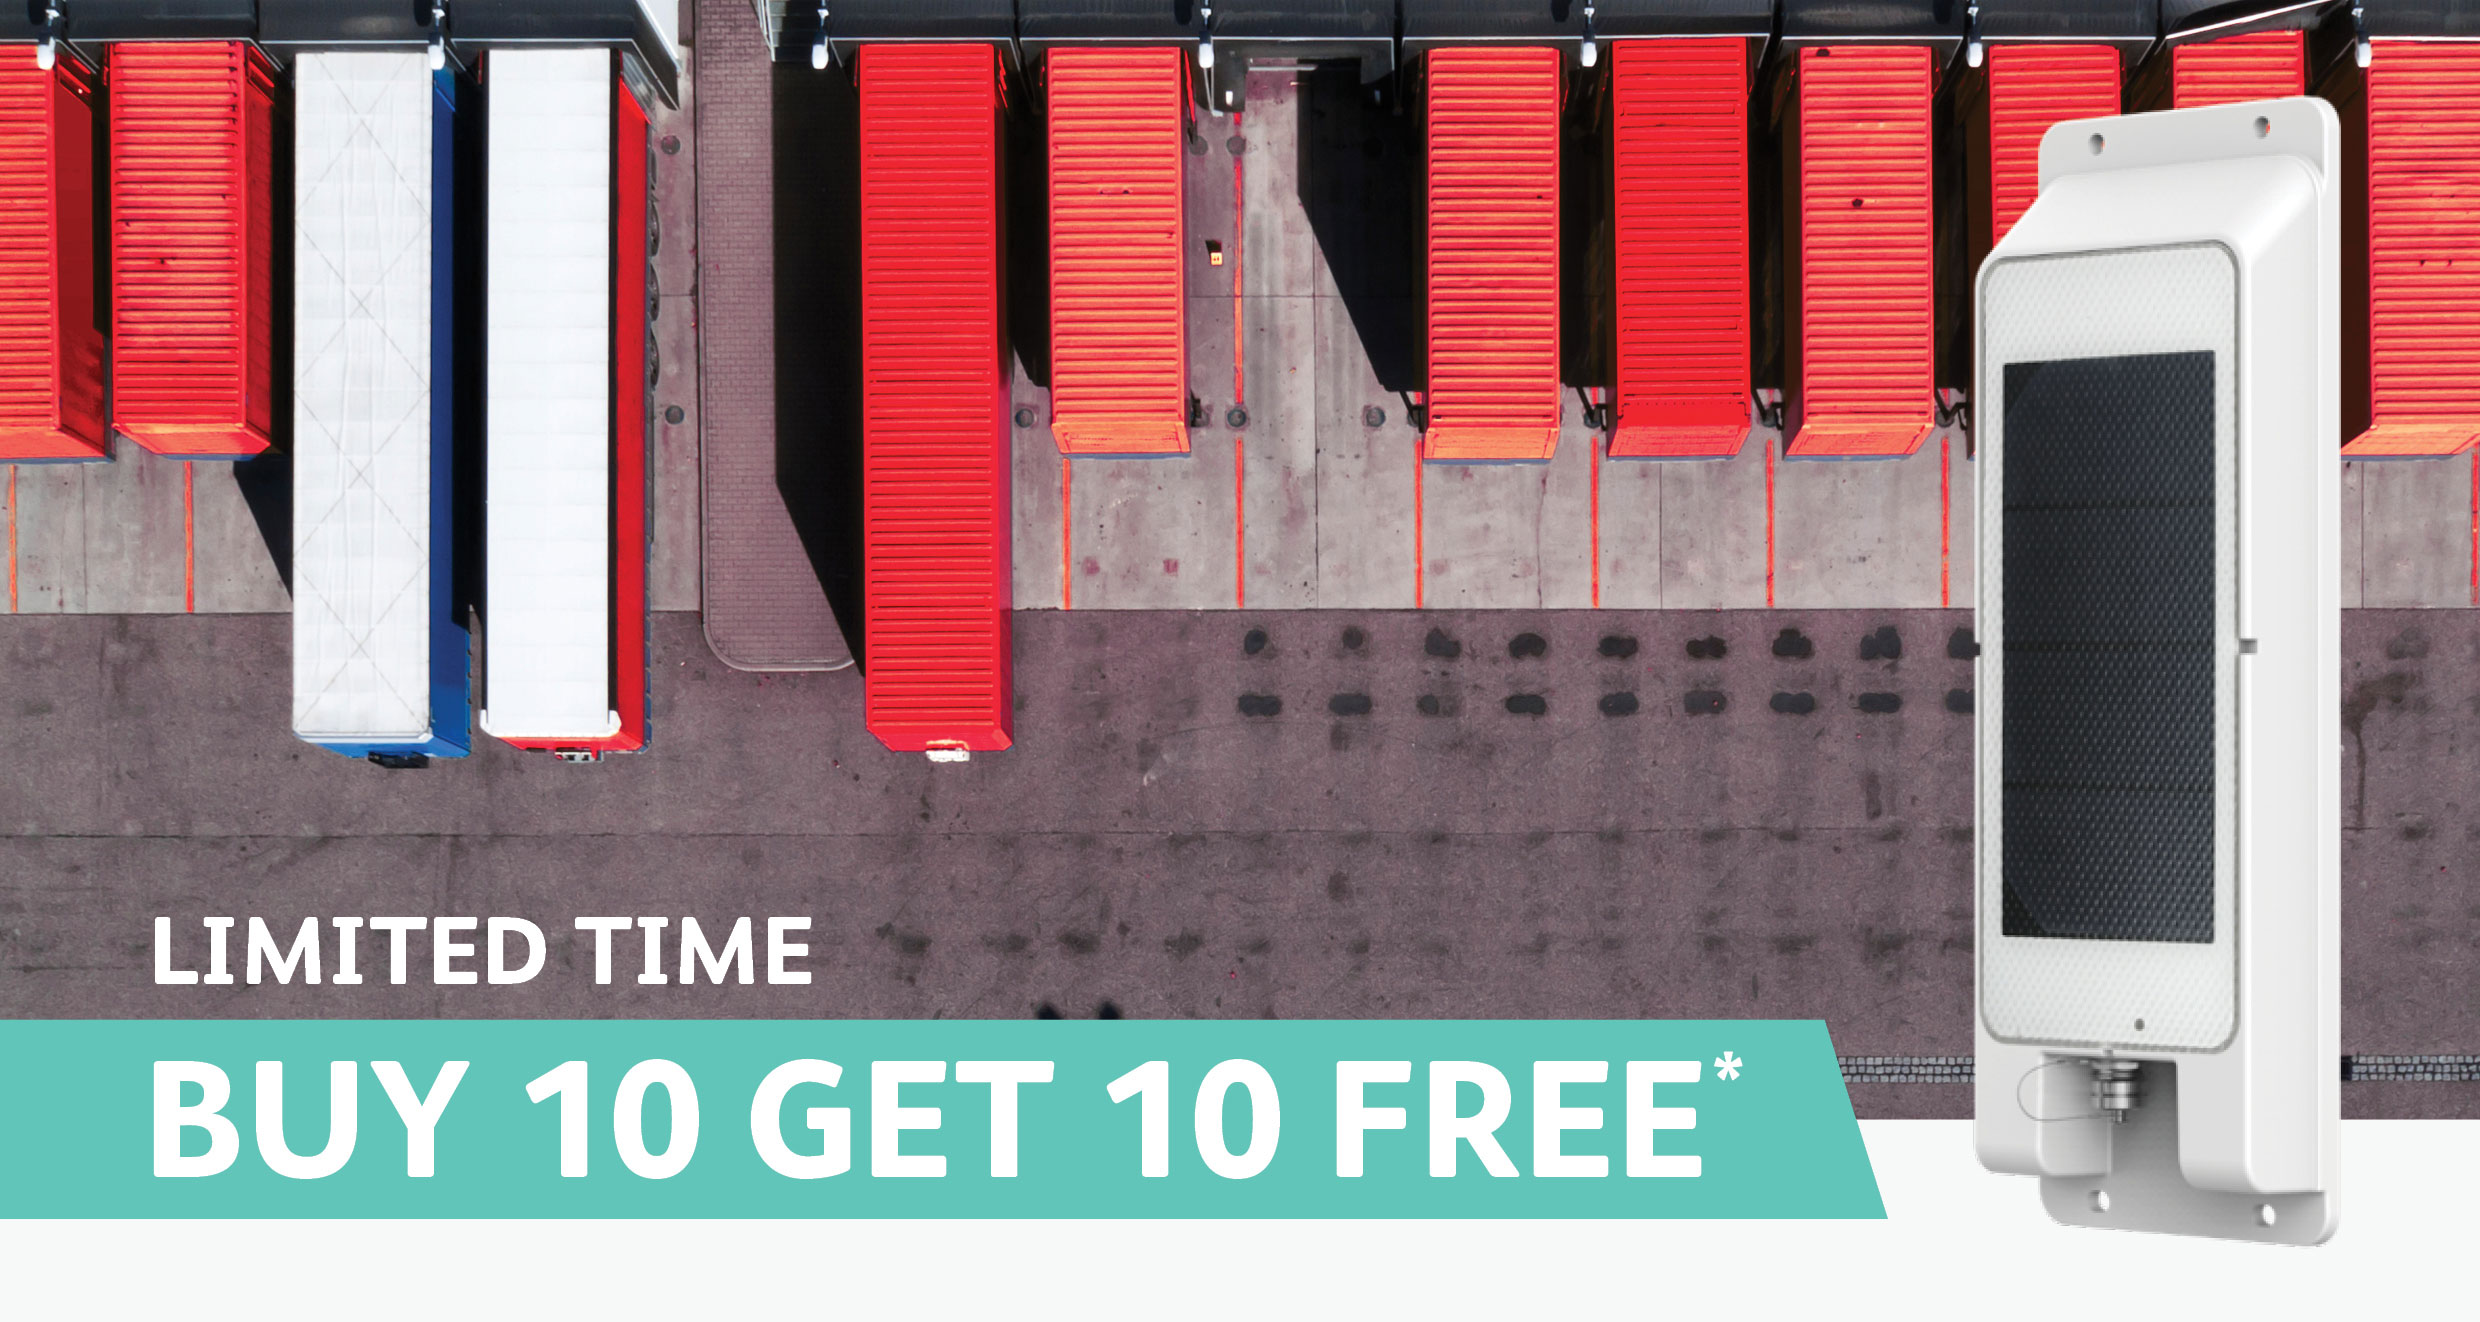 Limited Time: Buy 10 get 10 FREE*